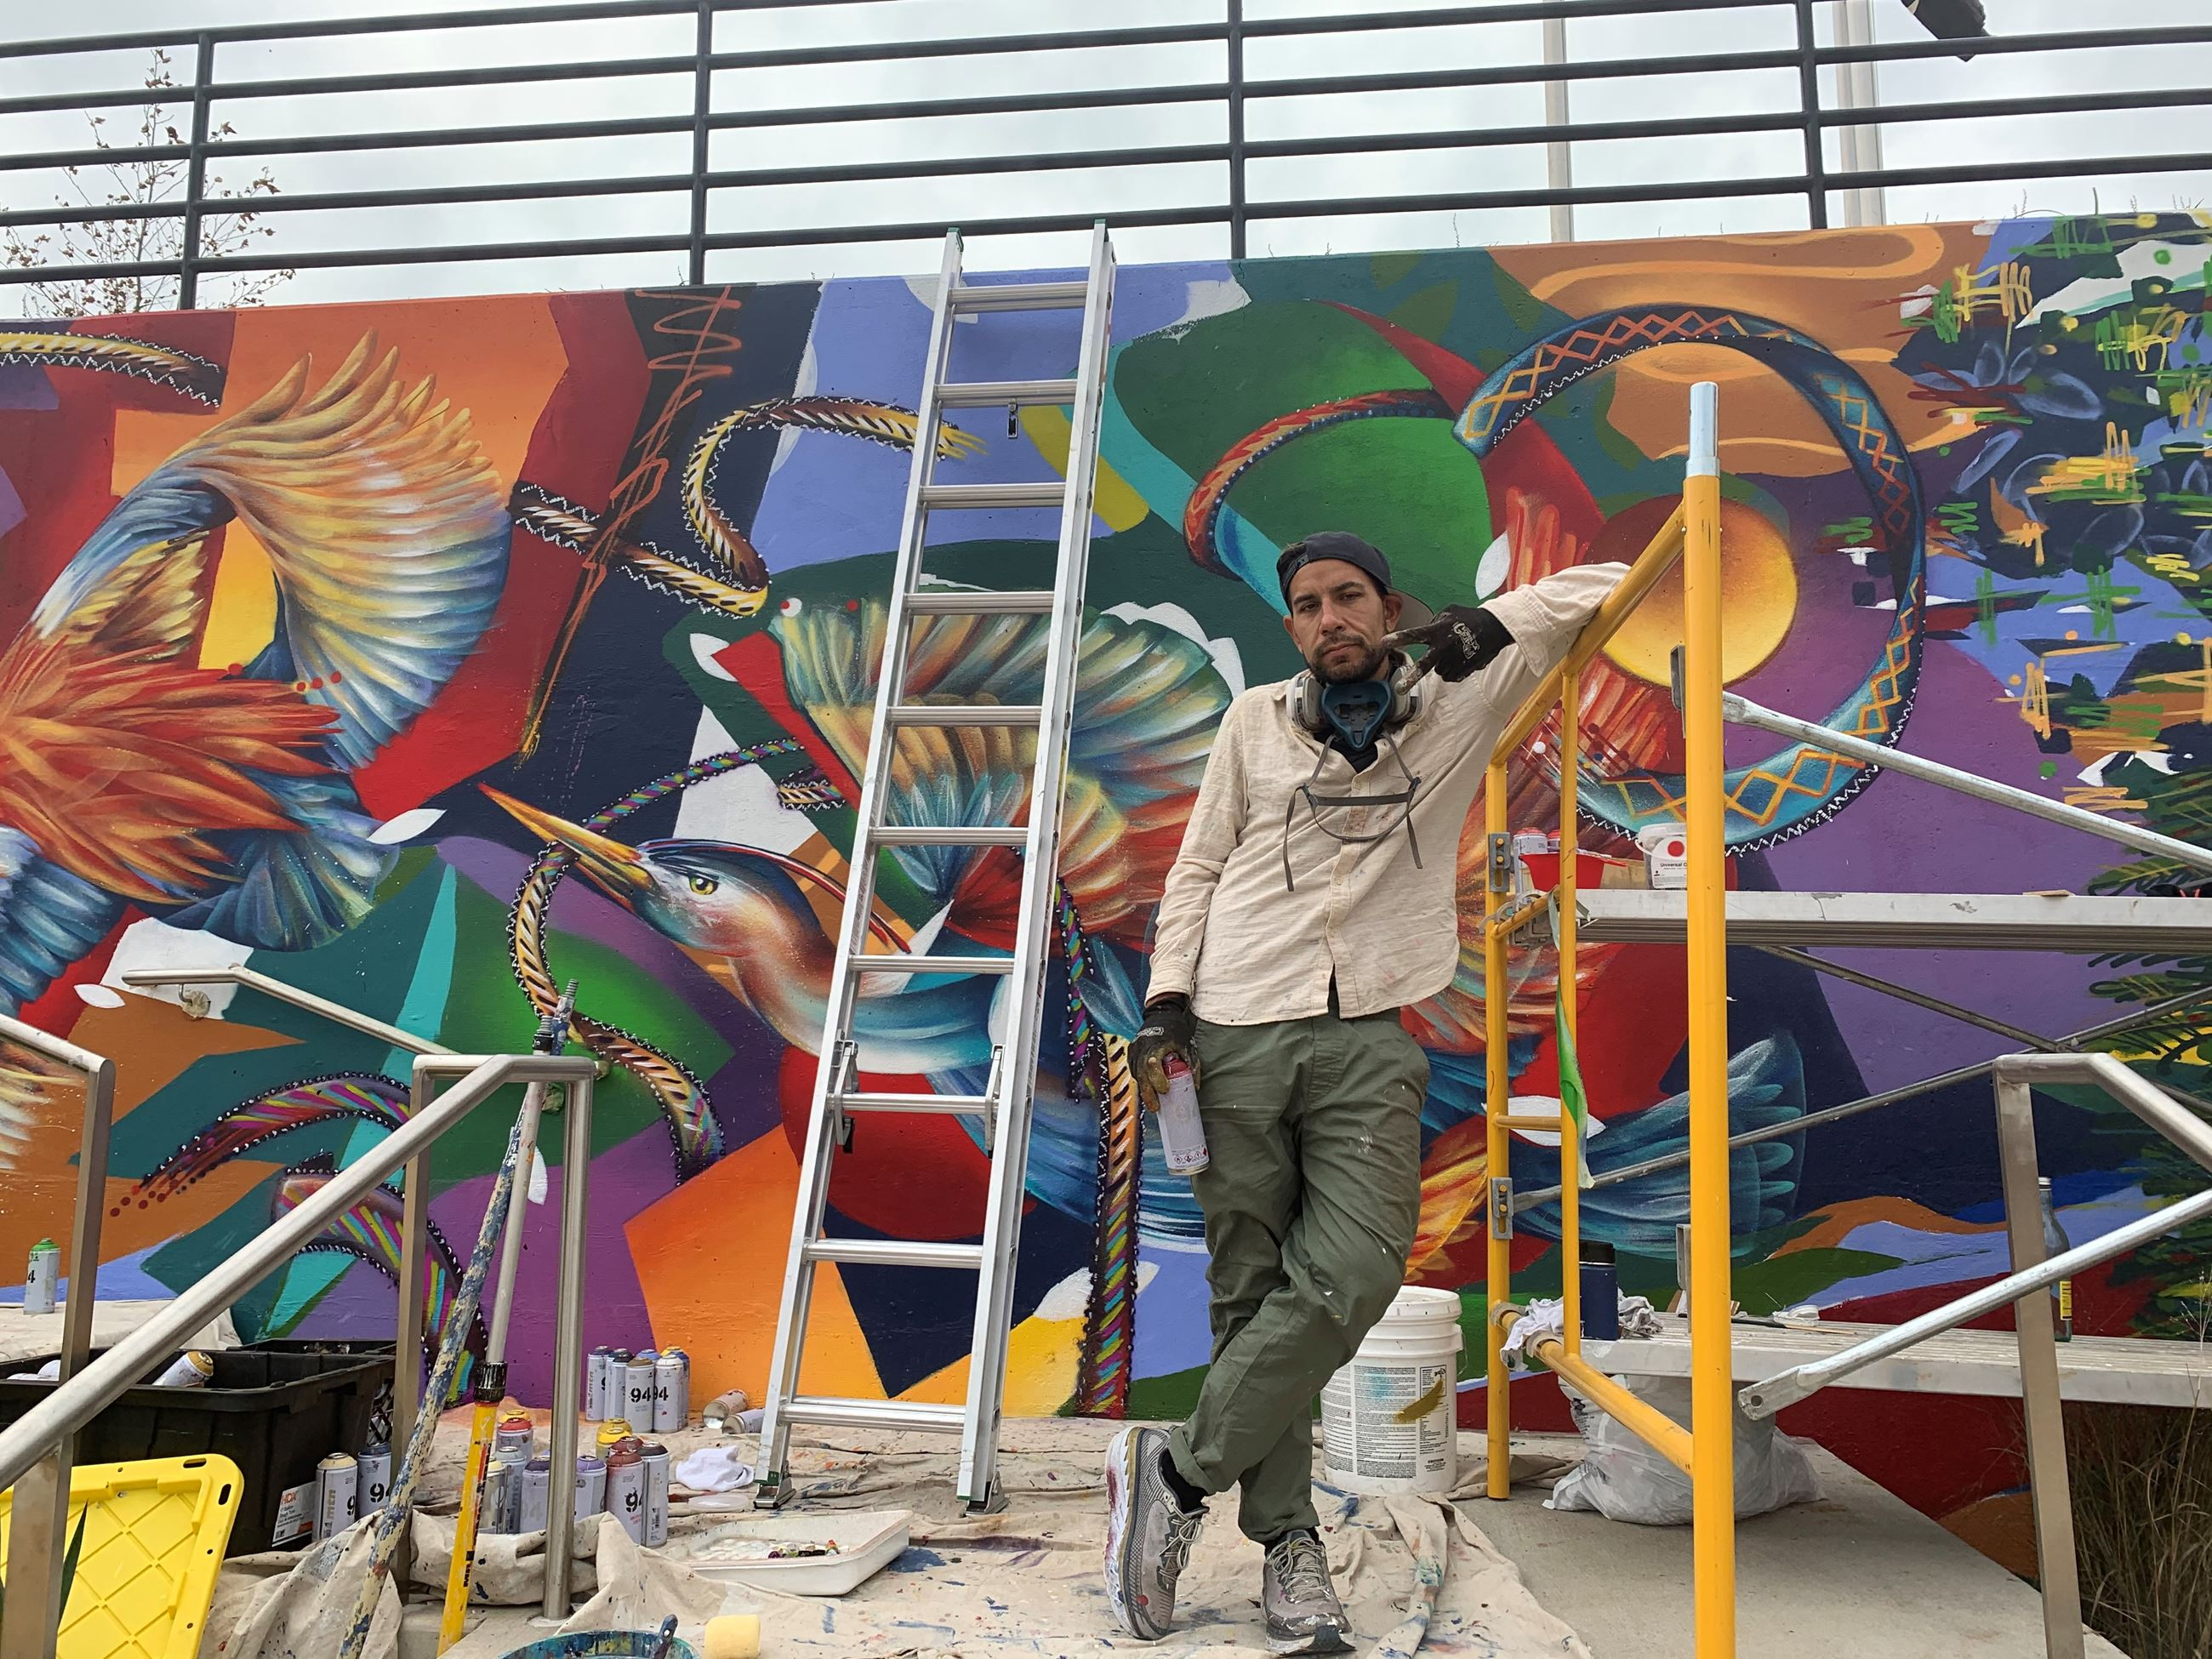 Artists Yatika Fields in front of colorful mural of heron and fauna